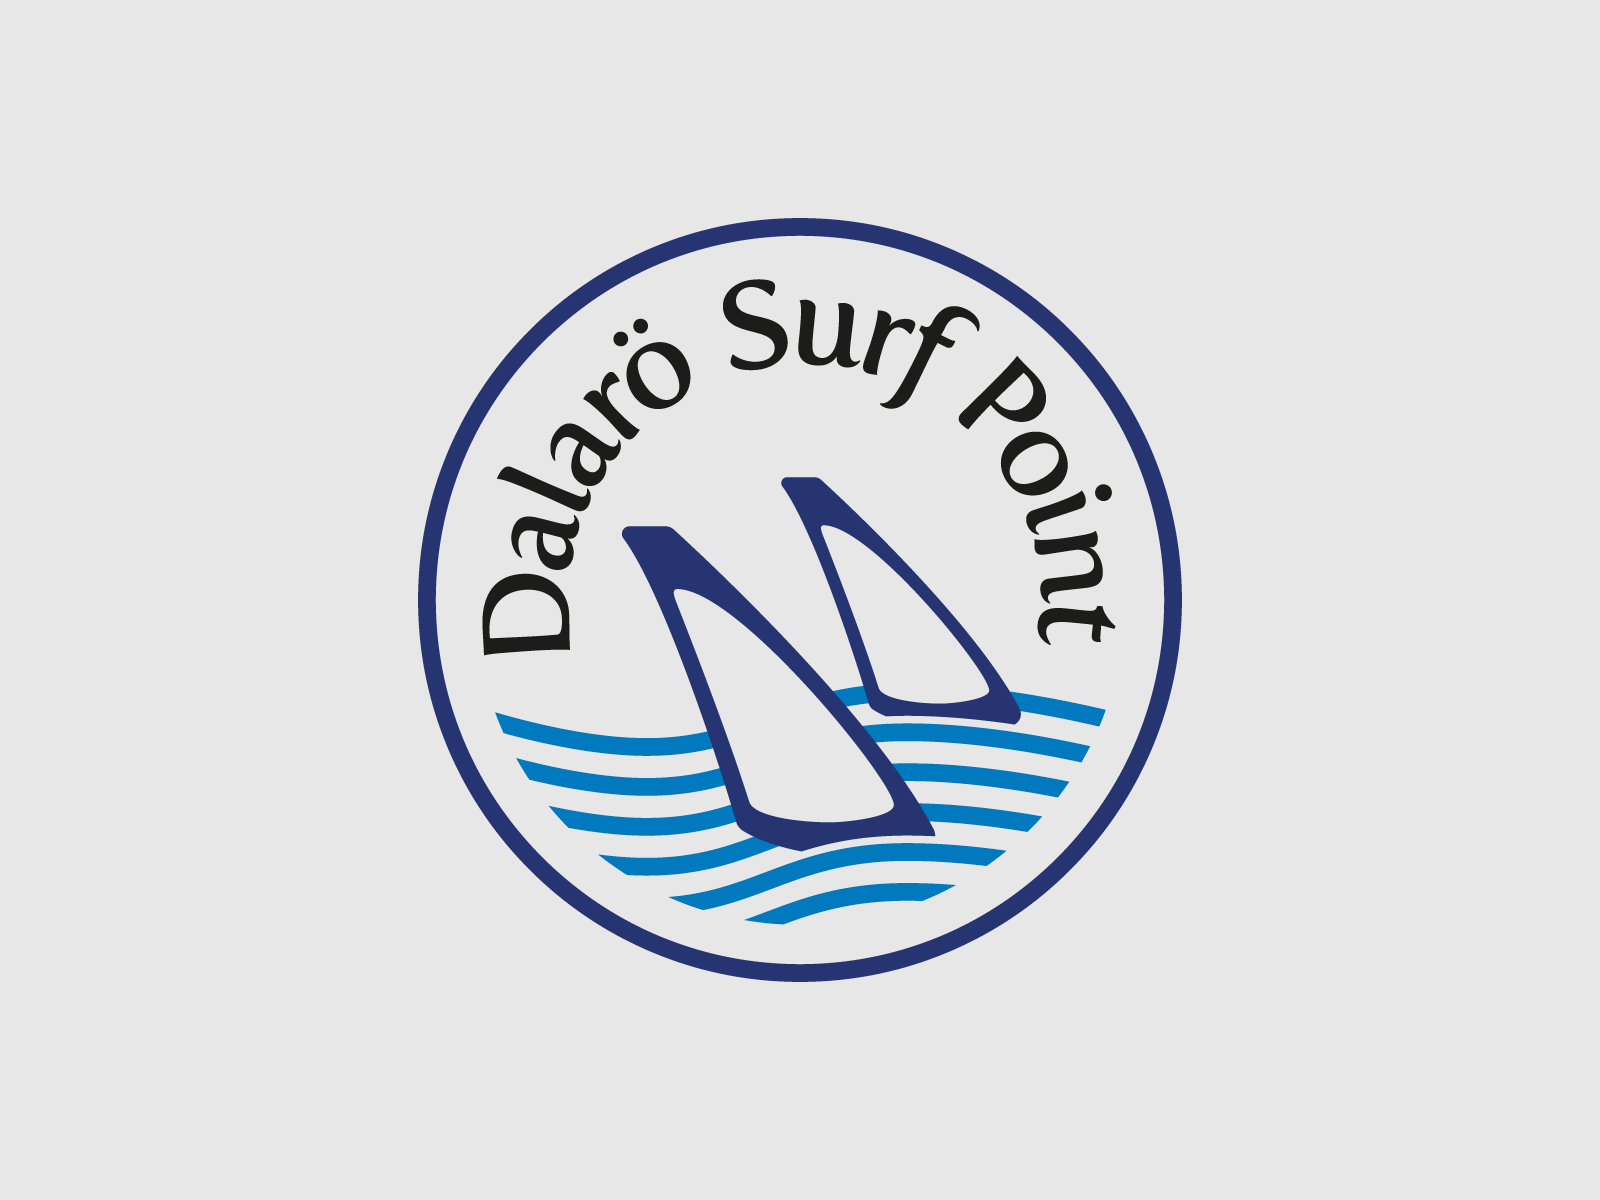 Dalarö Surf Point logo